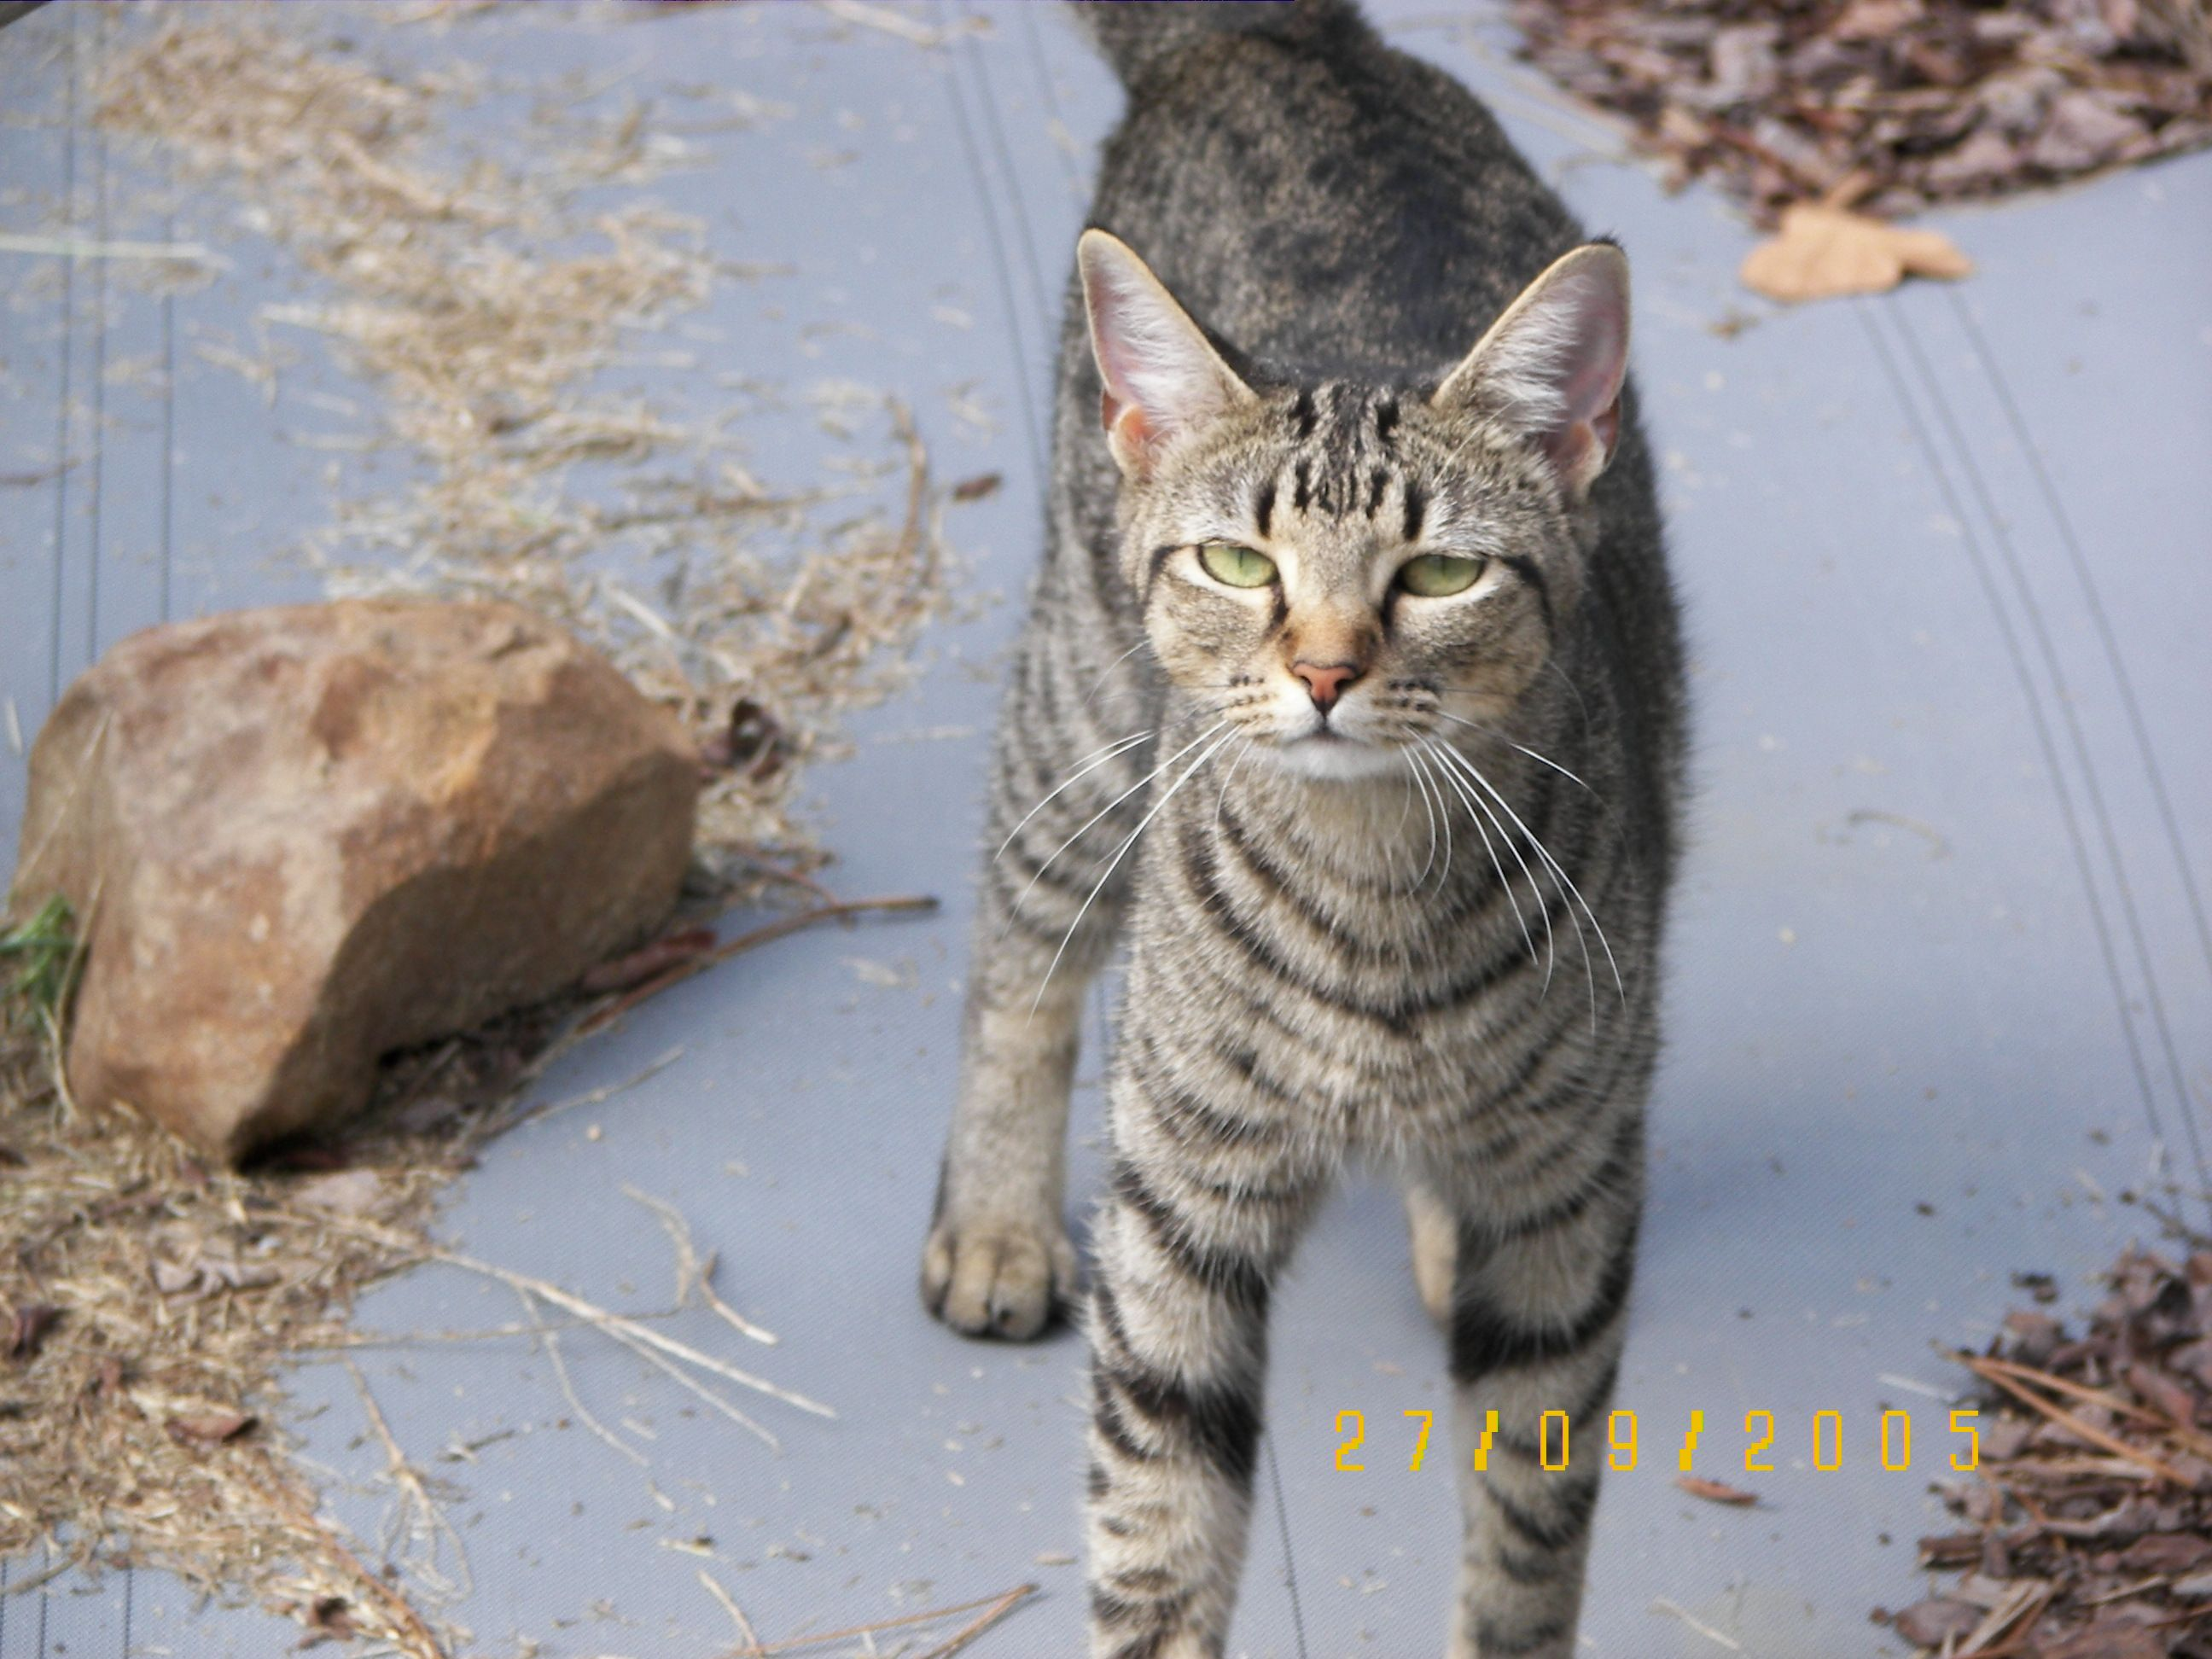 Abby the Tabby - Looking Tough!